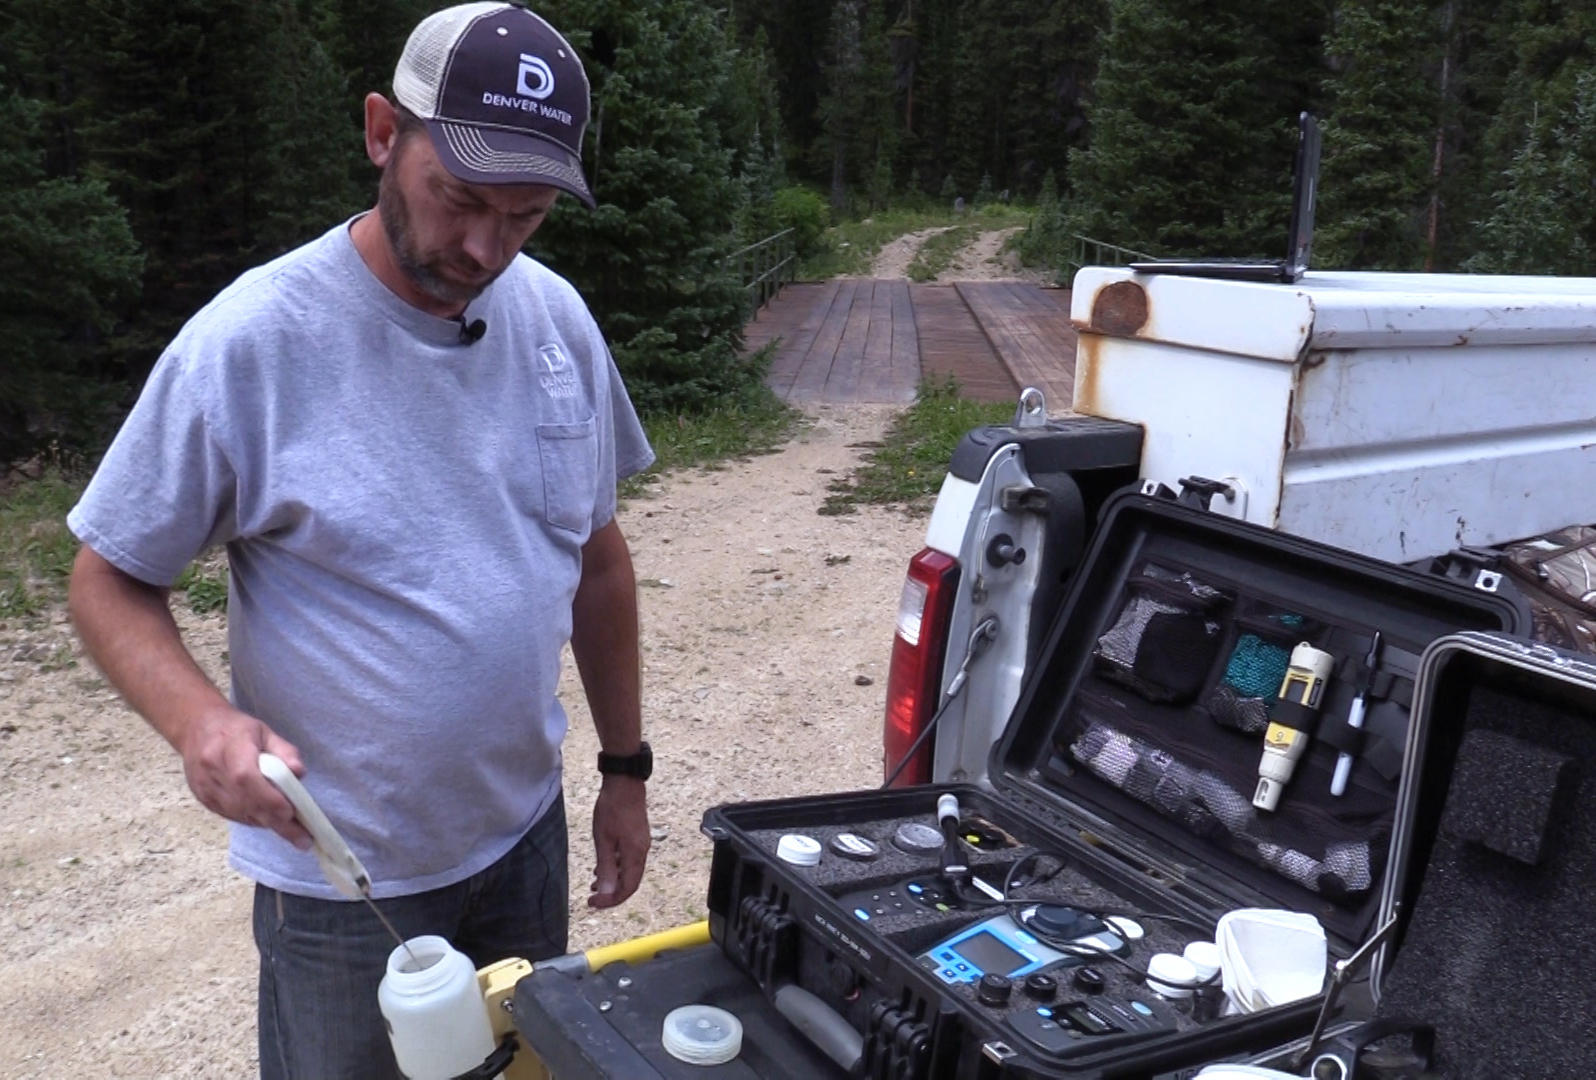 Nick Riney, water quality technician, performs several tests in the field during a watershed sampling visit to Grand County, Colorado.